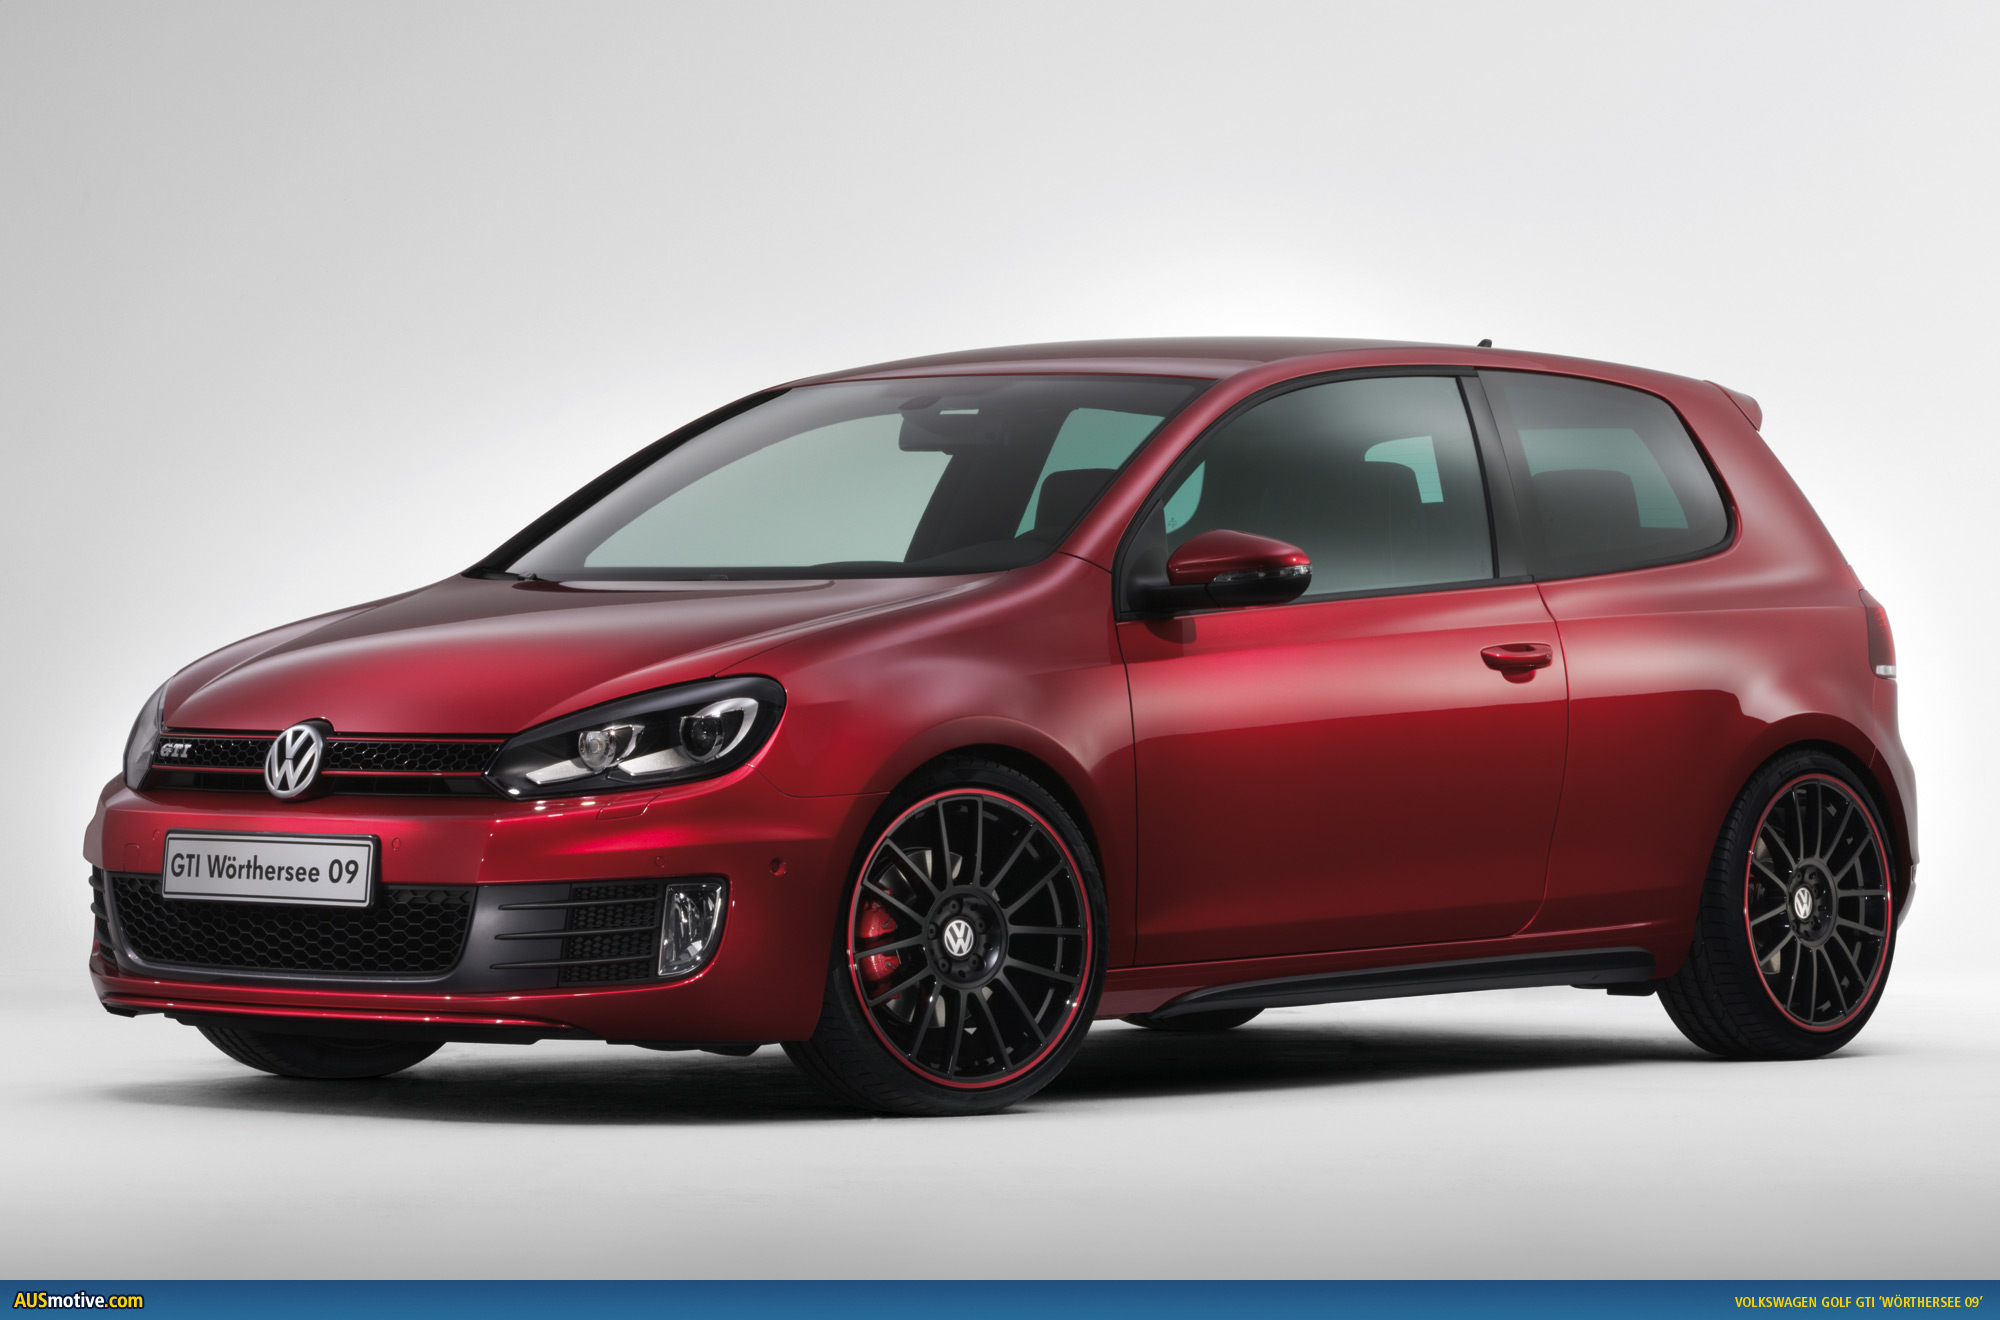 AUSmotivecom Golf GTI amp Polo Wrthersee 09 Concepts